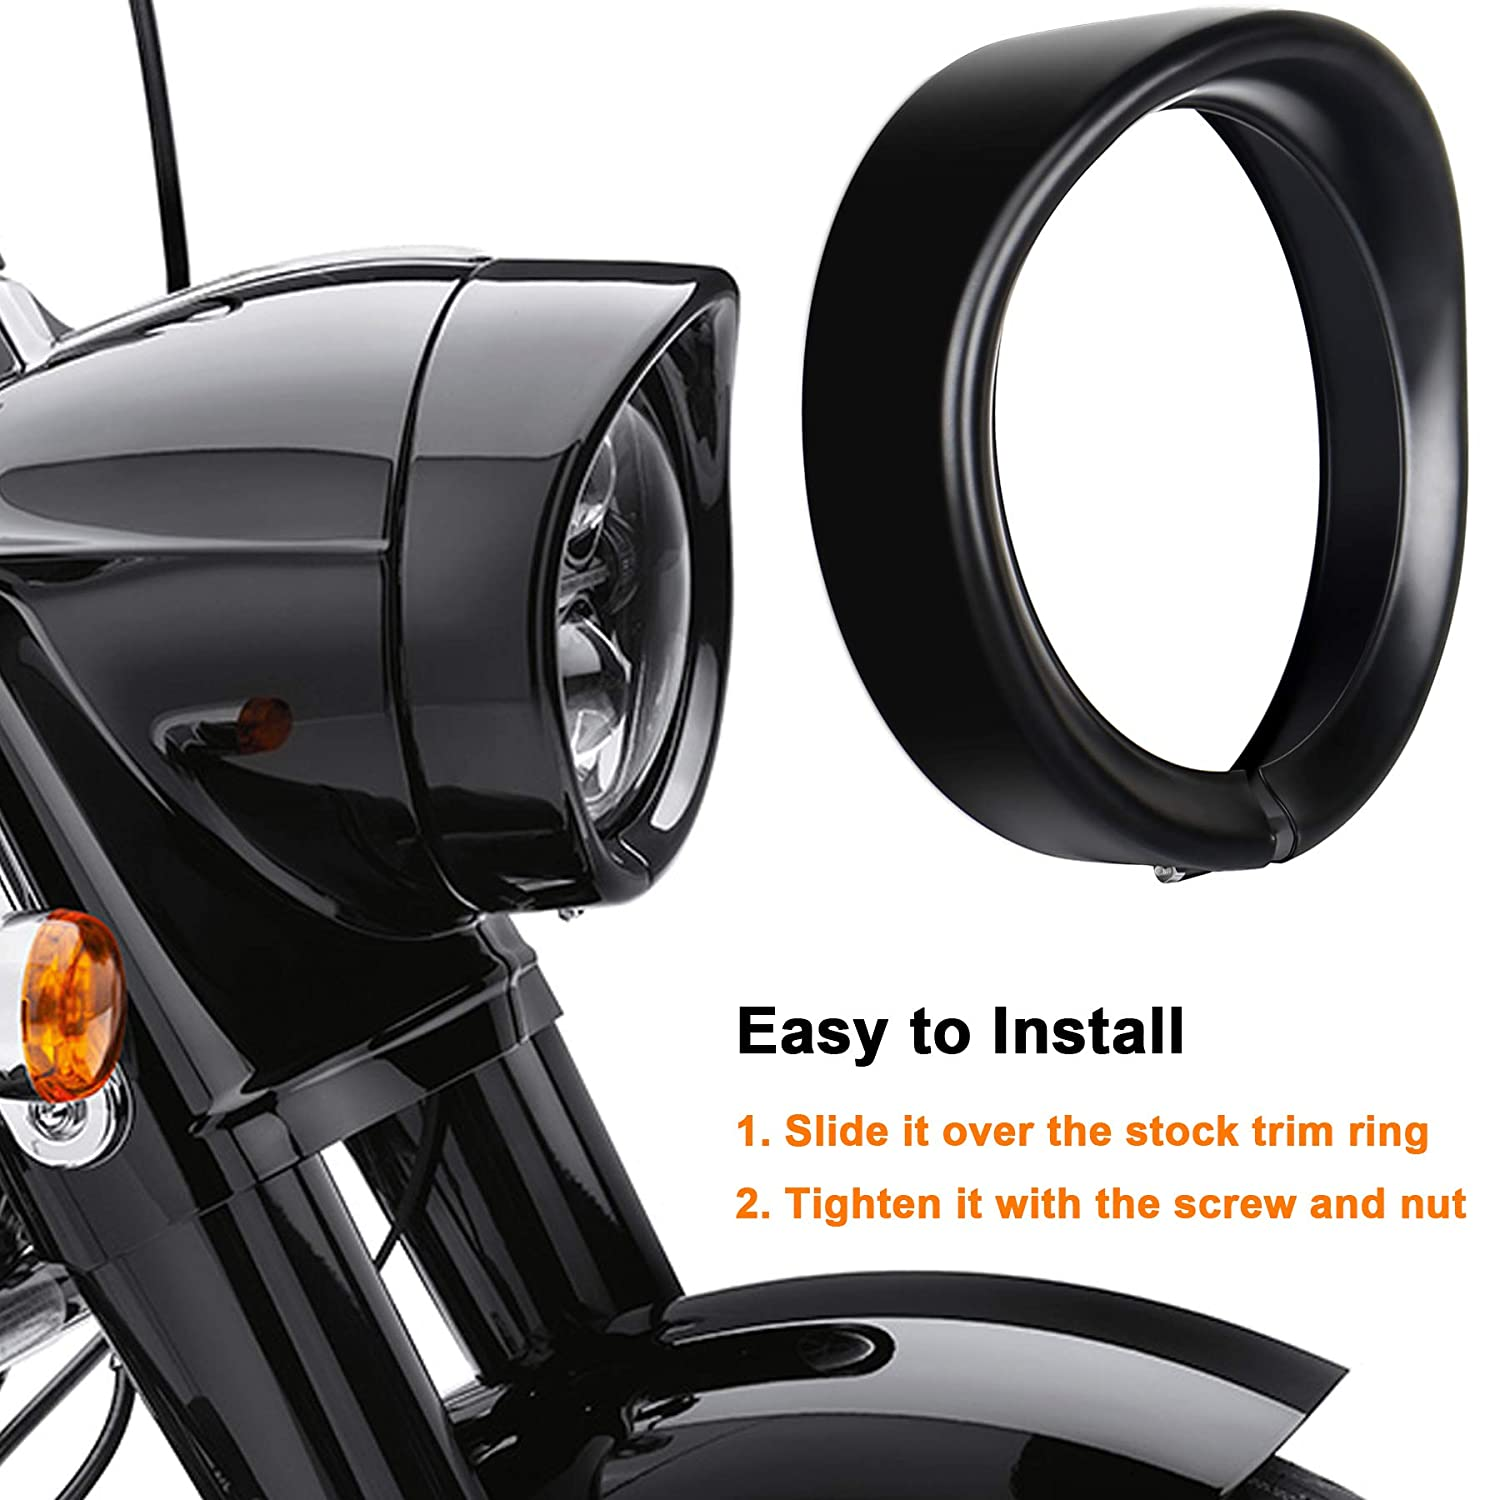 OVOTOR Harley Headlight Trim Ring 7inch Black Visor Type Motorcycle Trim Ring for Harley Softail Street Glide Road King Electra Glide